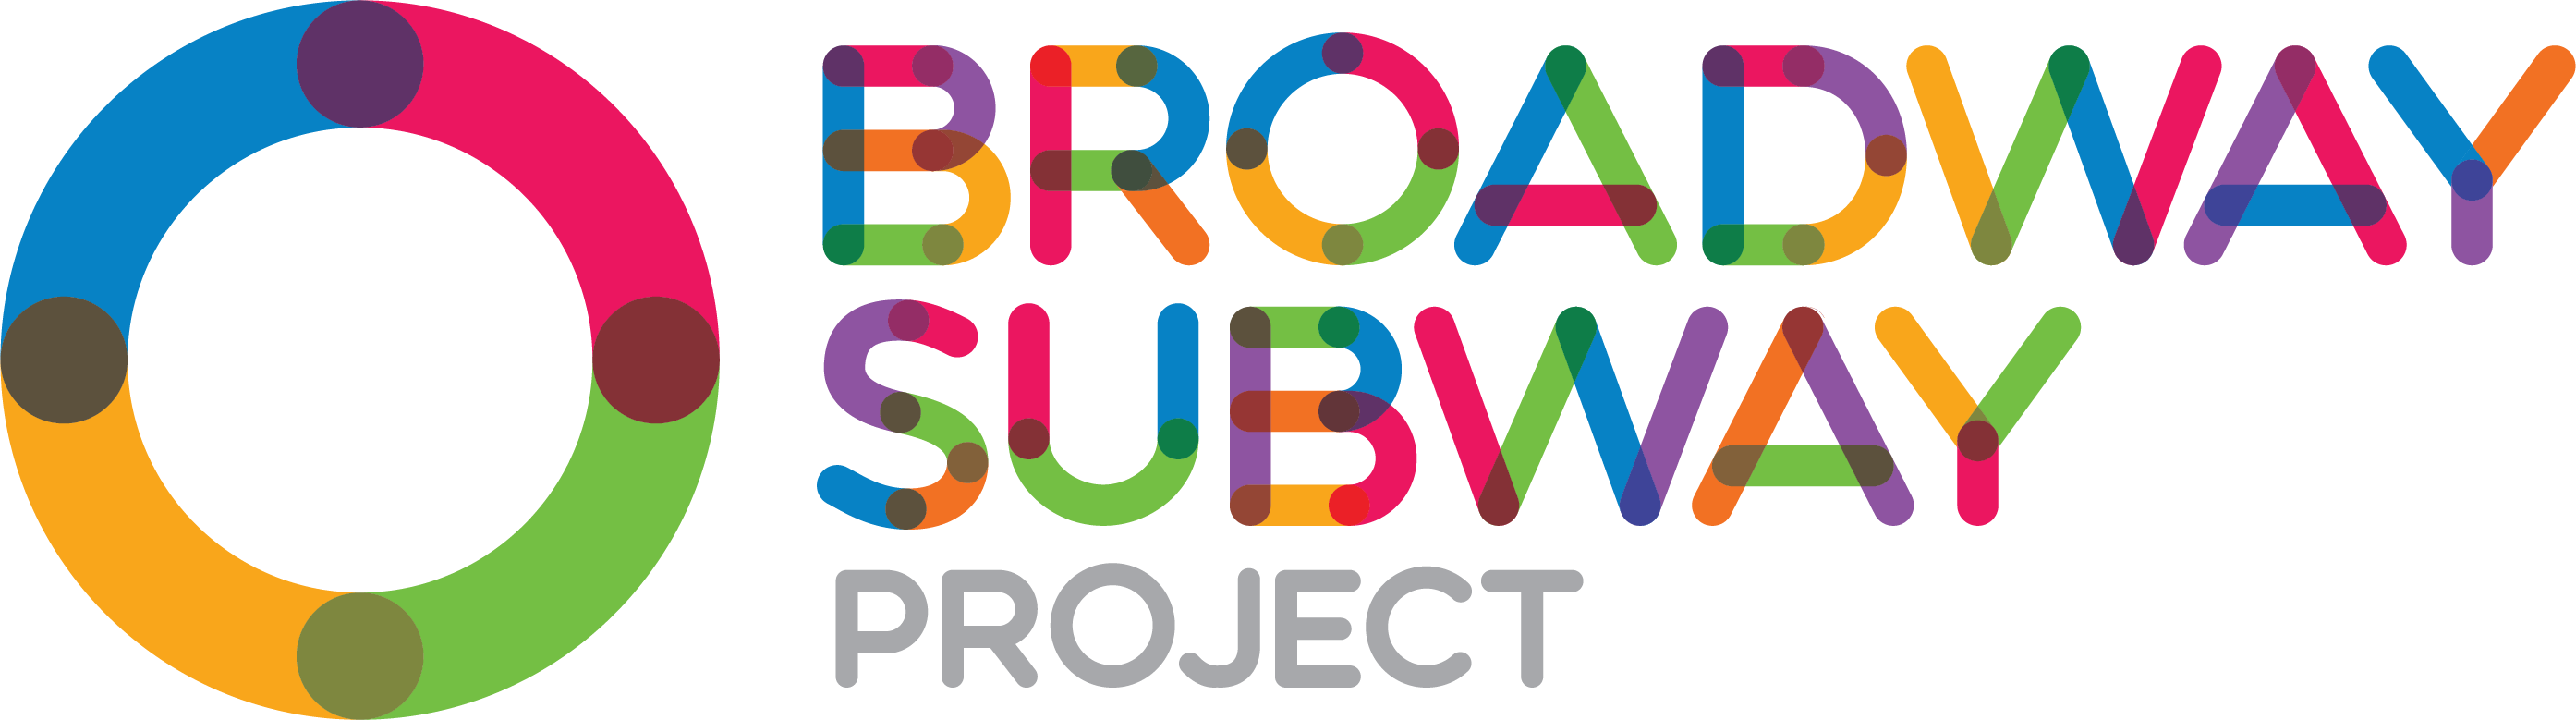 Broadway Subway Project